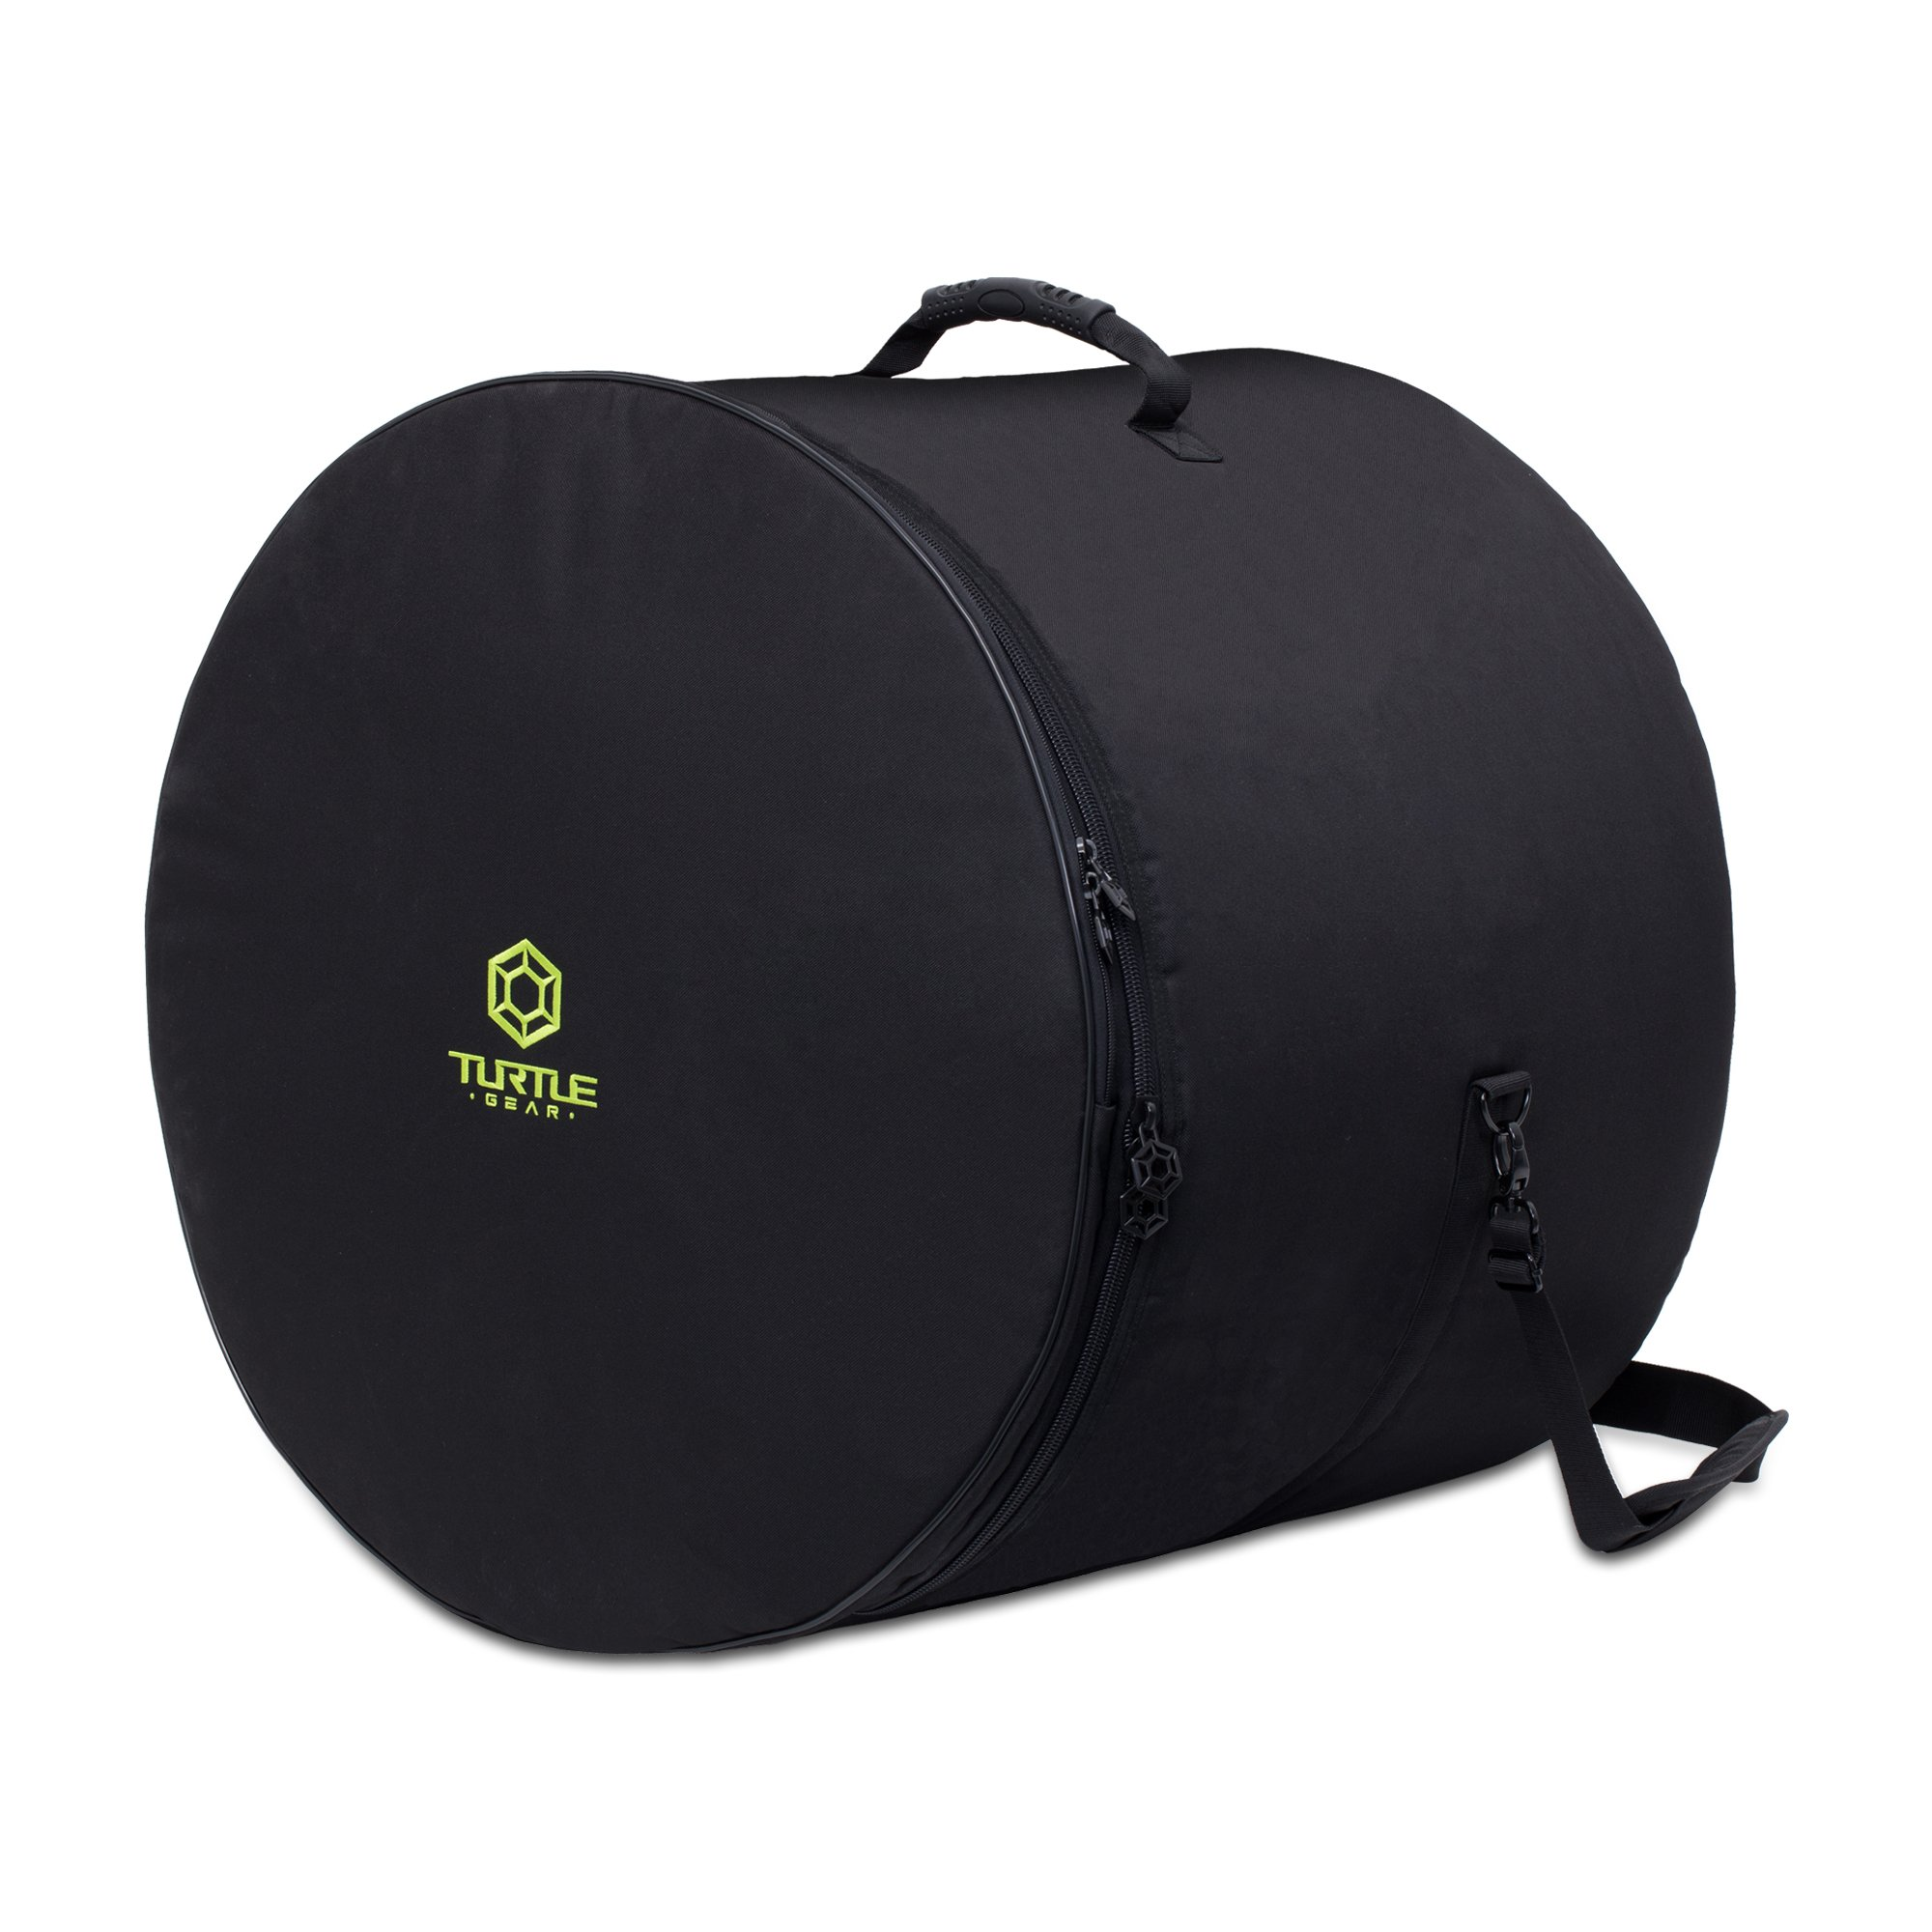 TURTLE GEAR Extra Thick Padded Nylon Drum Case Bags: Standard 5-piece Set by Turtle Gear (Image #2)